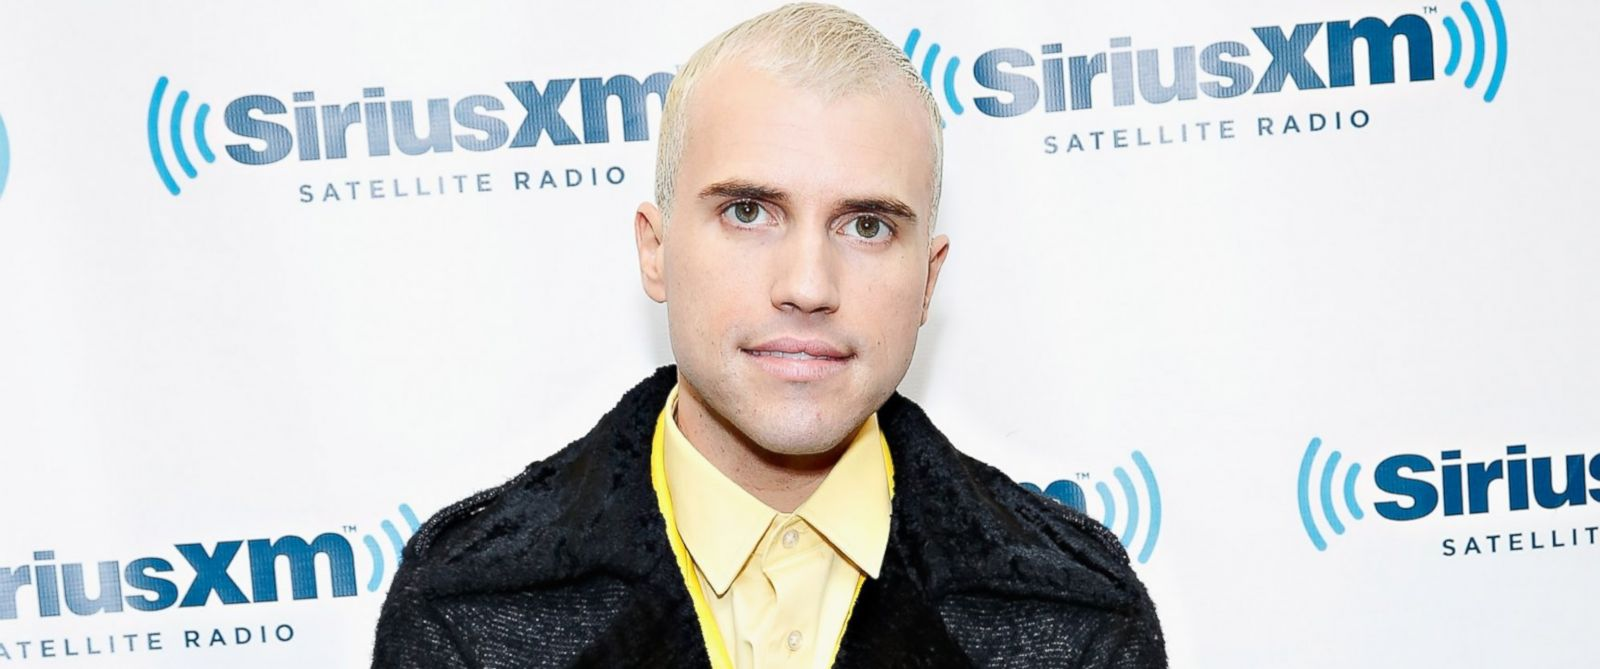 PHOTO: Singer Tyler Glenn of Neon Trees visits the SiriusXM Studios, March 13, 2014 in New York City.